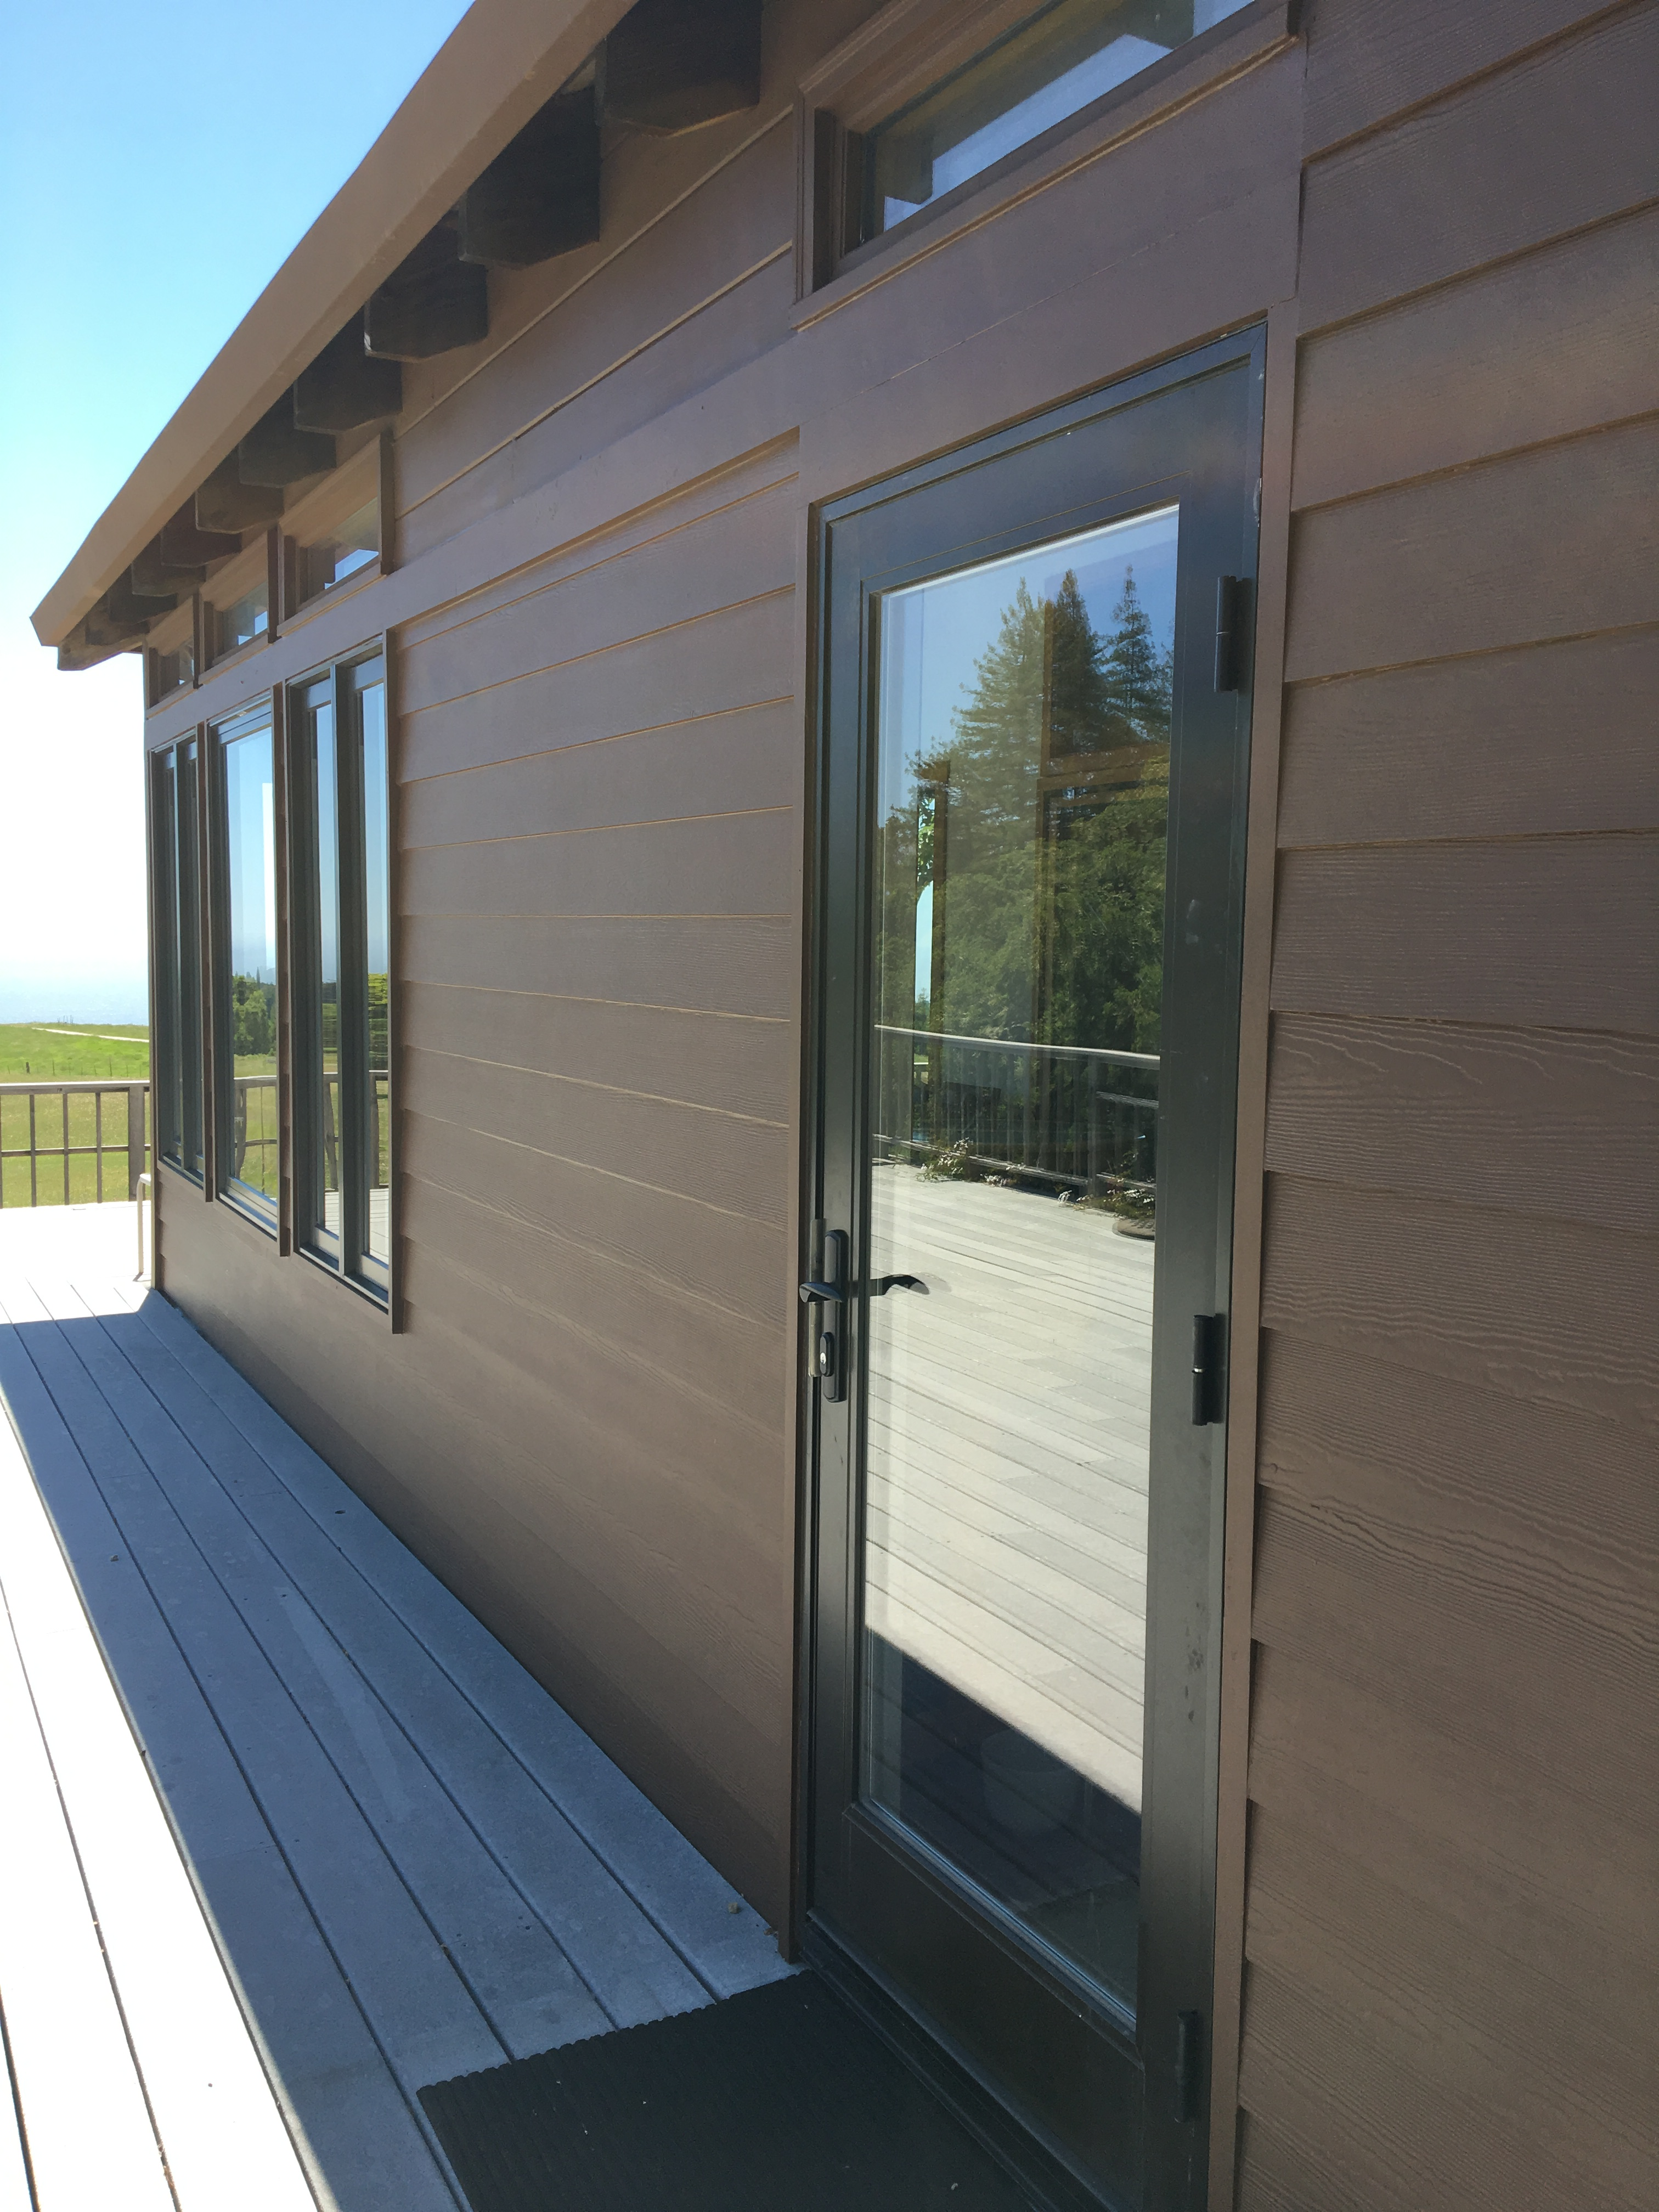 Energy Efficient Wood Windows Upgrade a Country Cabin